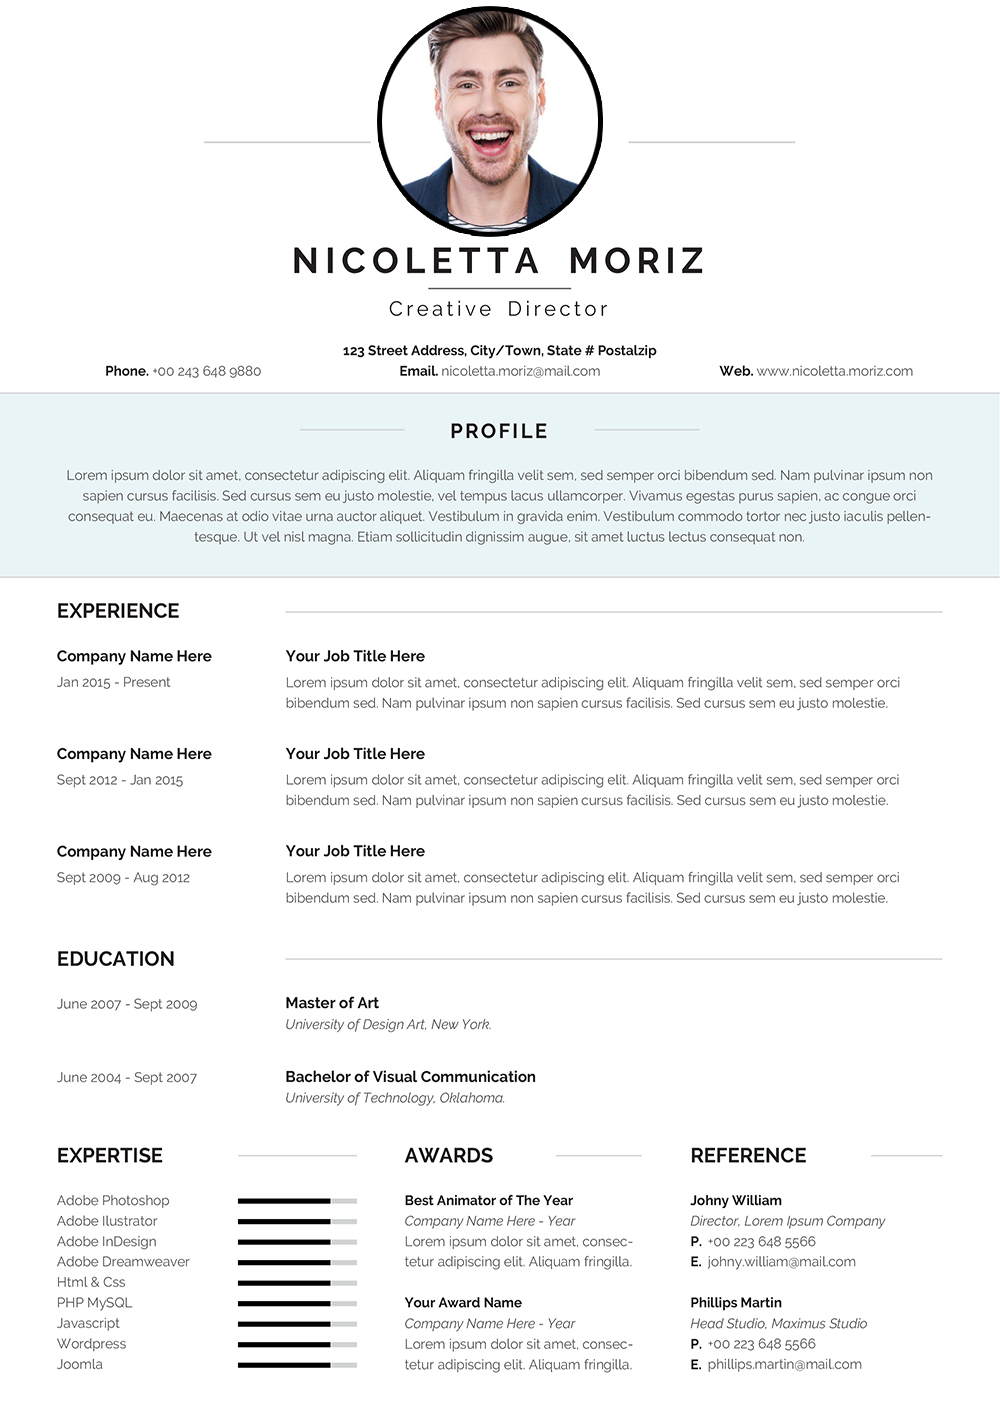 Swiss Style CV Template for 2021 to download Word format ...